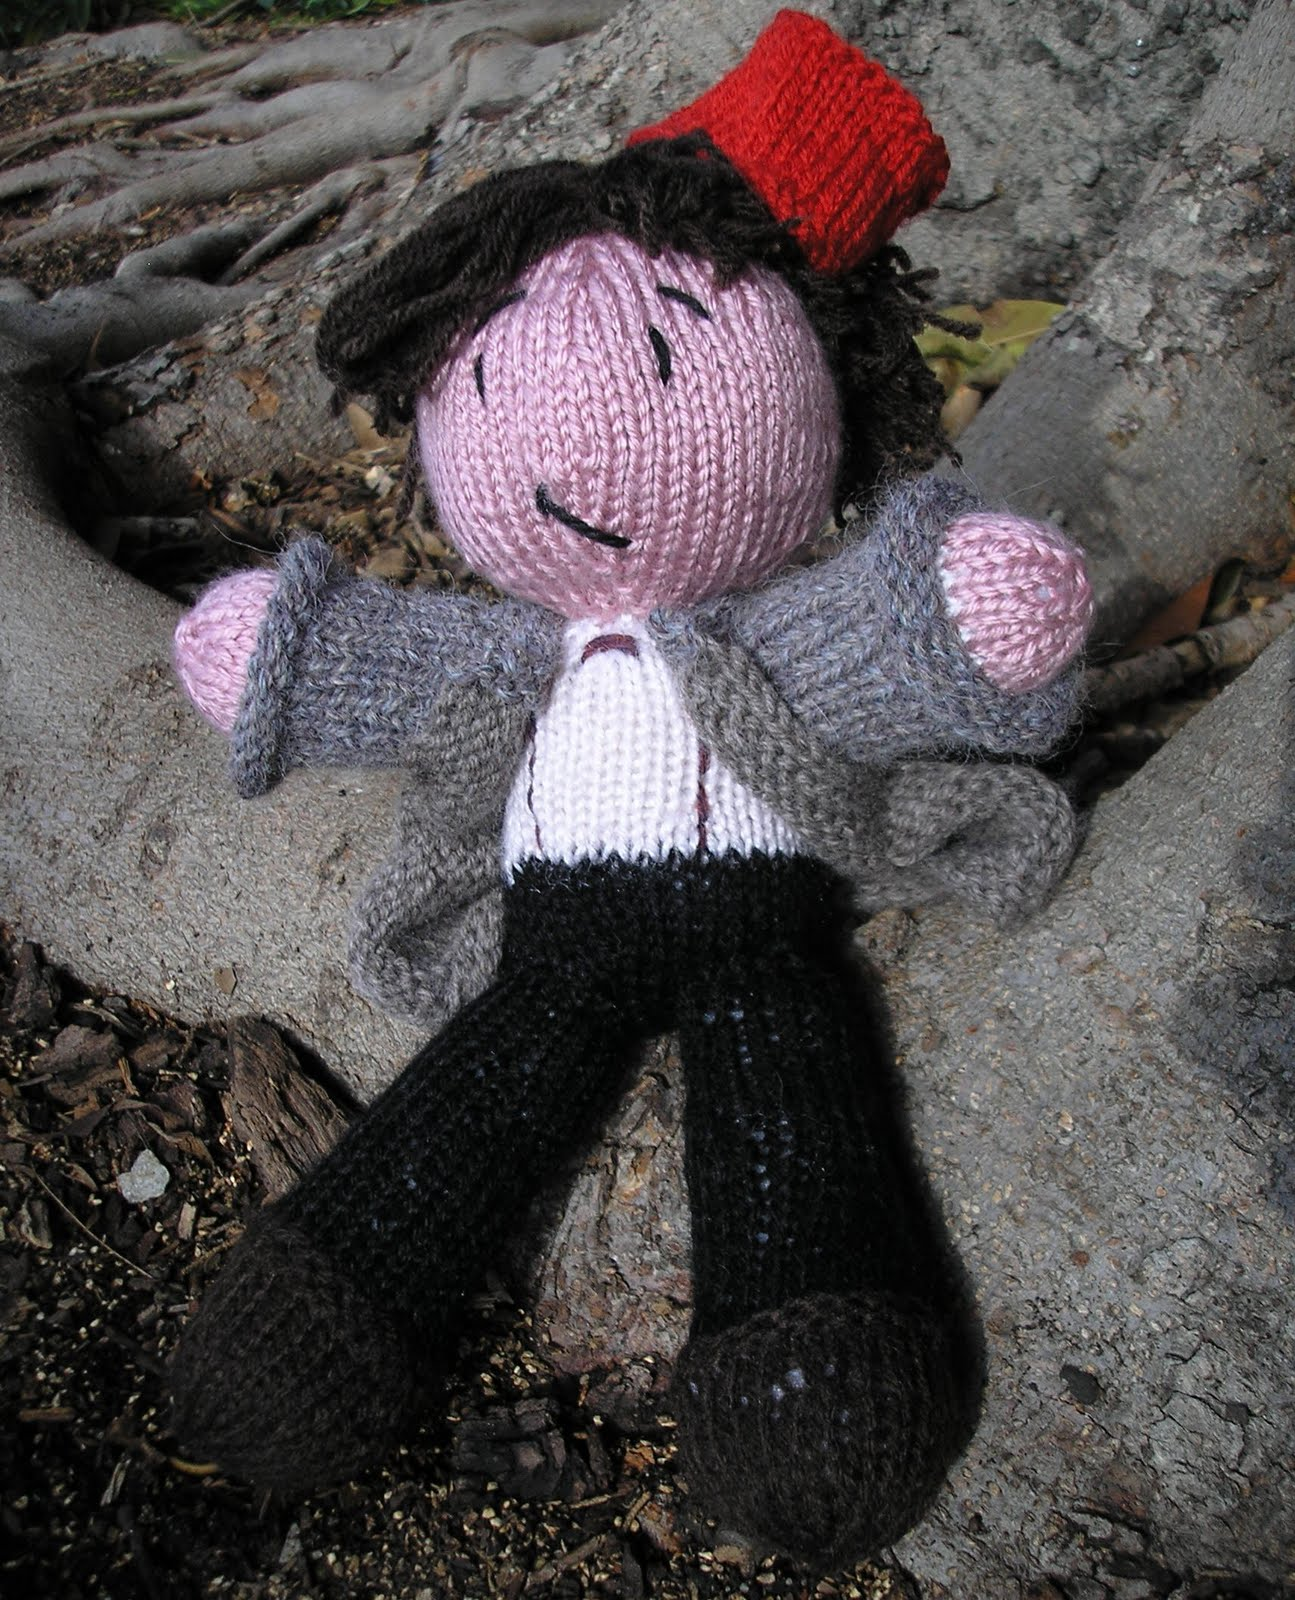 Pixelated Mushroom: Matt Smith Big and Cuddly - now a knitting pattern